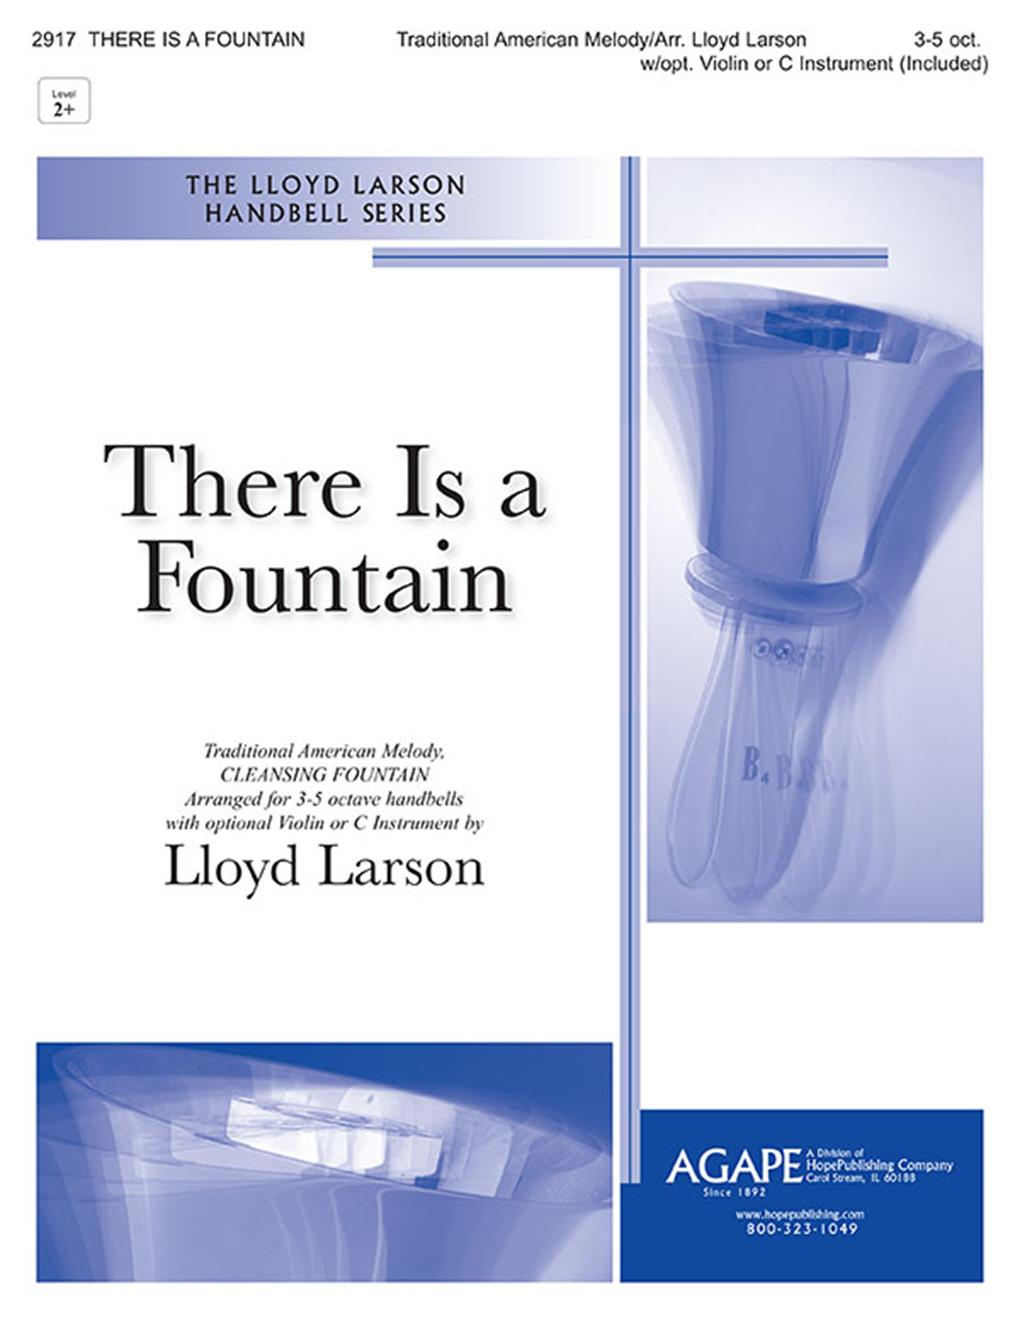 There Is A Fountain - 3-5 Oct. Cover Image